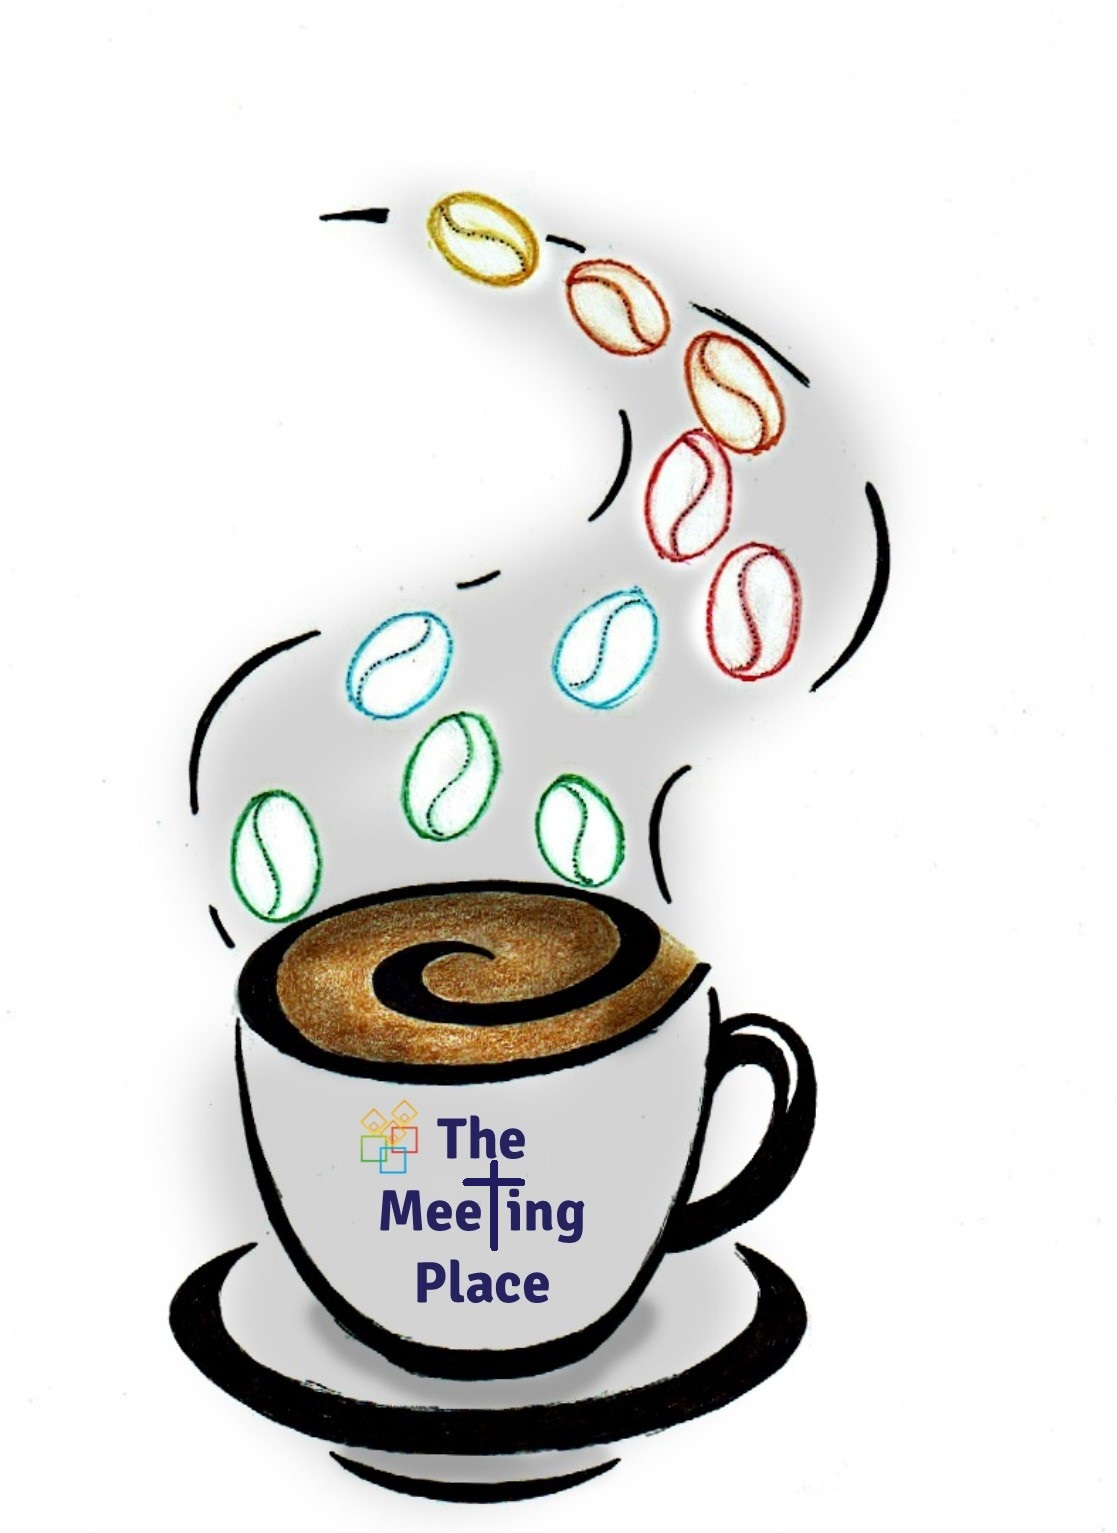 The meeting place logo10 (2)